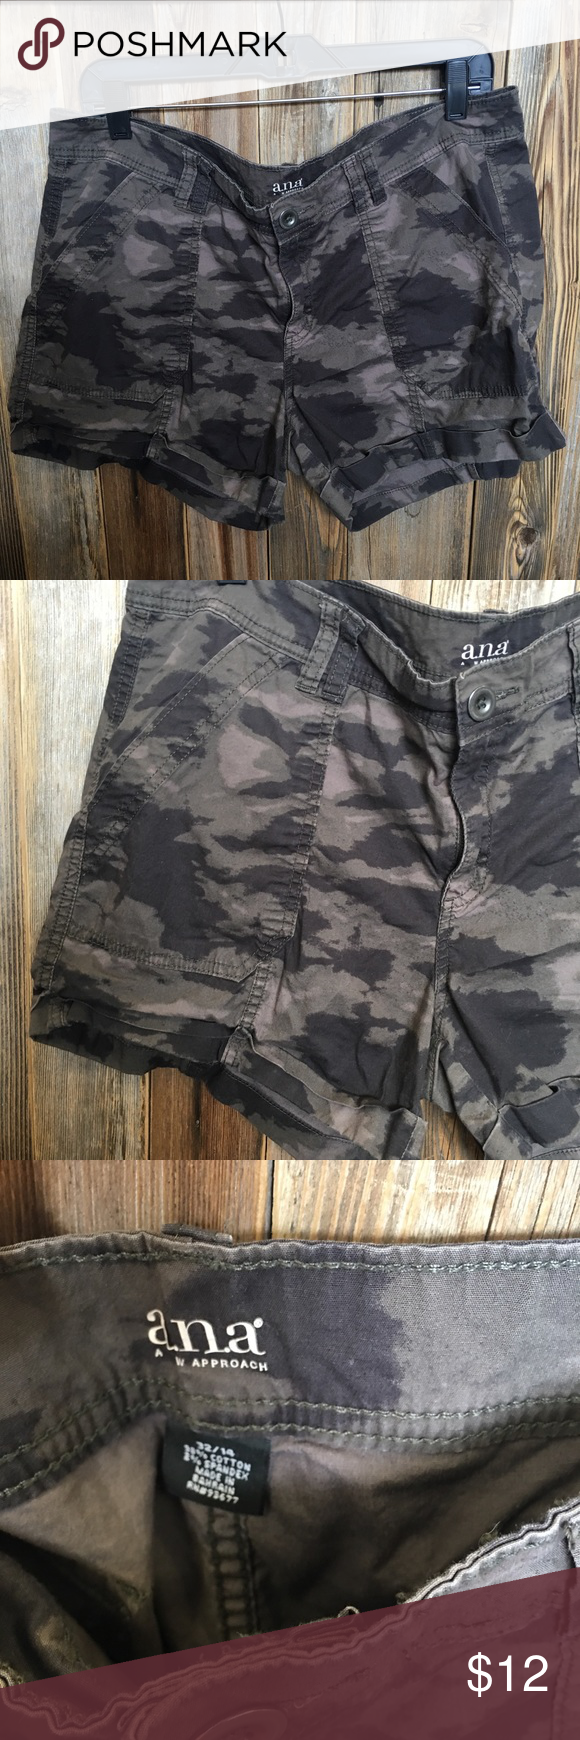 Ana Shorts • ANA SHORTS SIZE 32/14 IN GOOD CONDITION • NO TRADES a.n.a Shorts